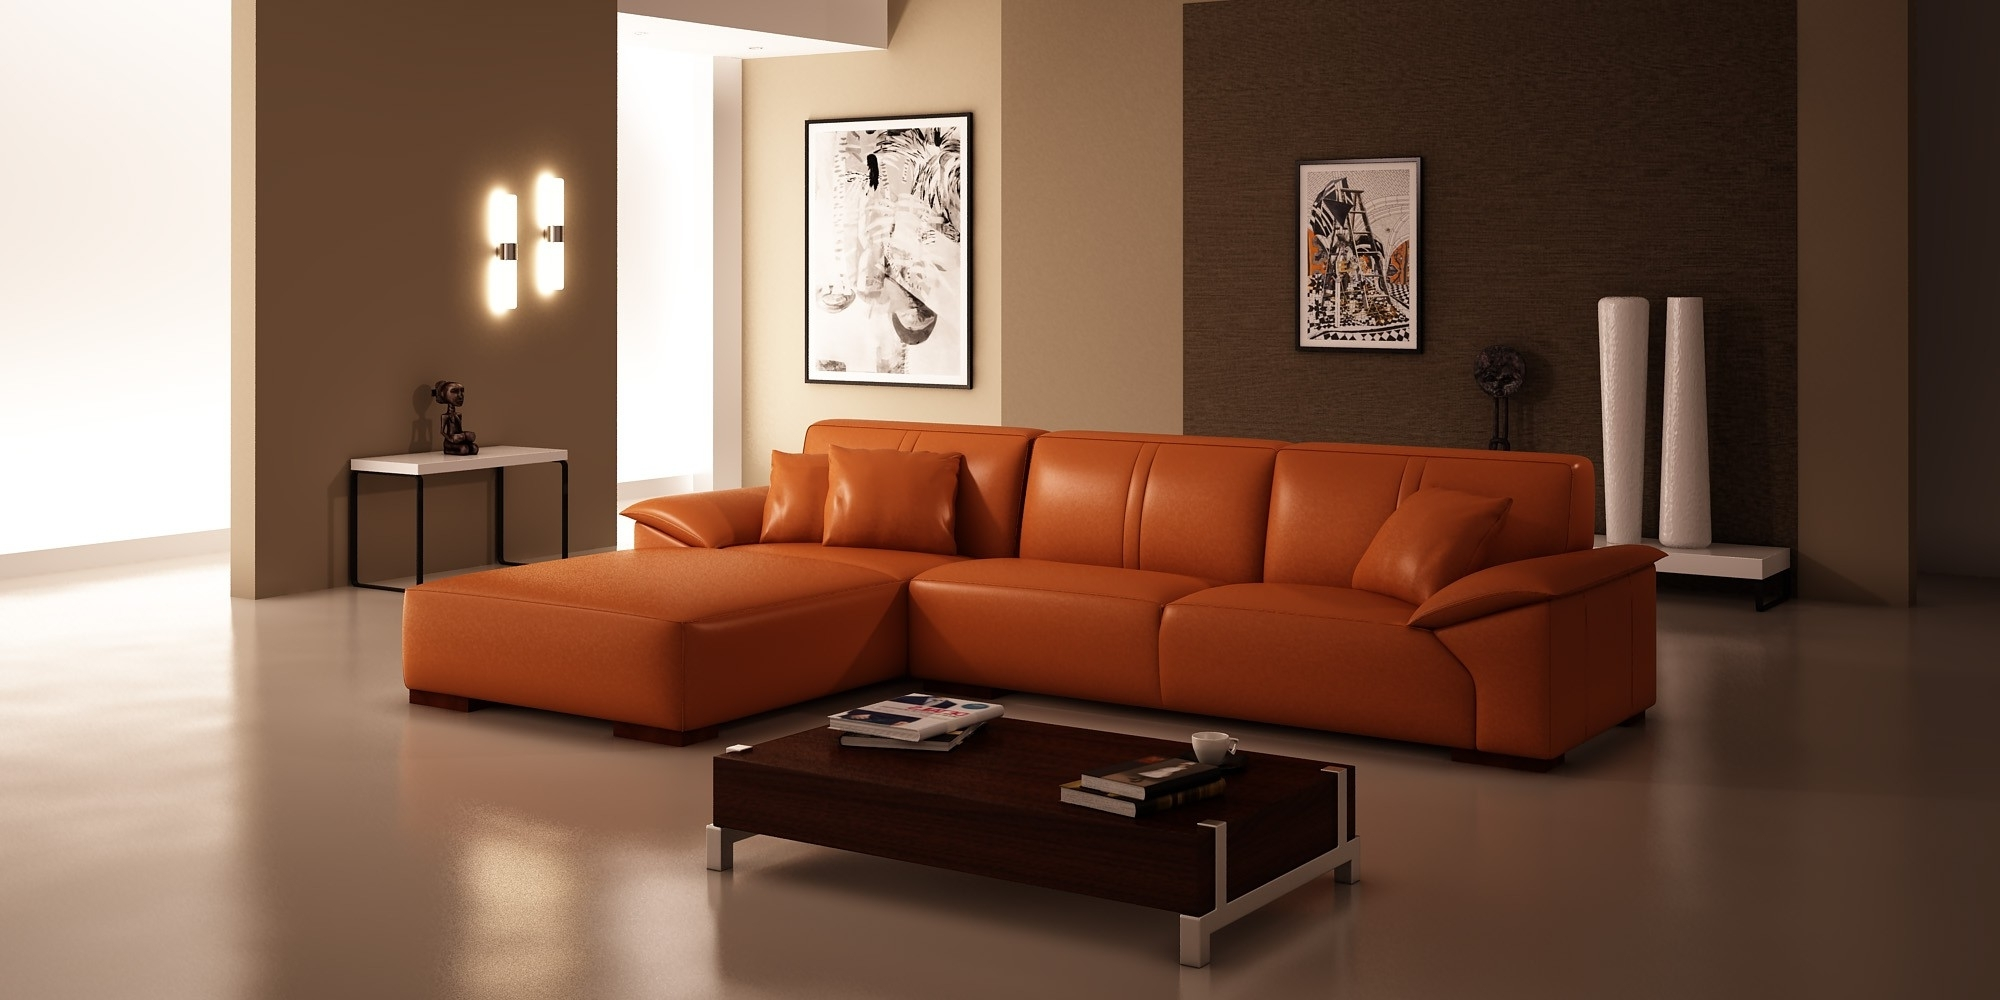 Widely Used Furniture: Impressive Living Room Decor Using Chic Sectional For Sectional Sofas At Amazon (View 15 of 15)